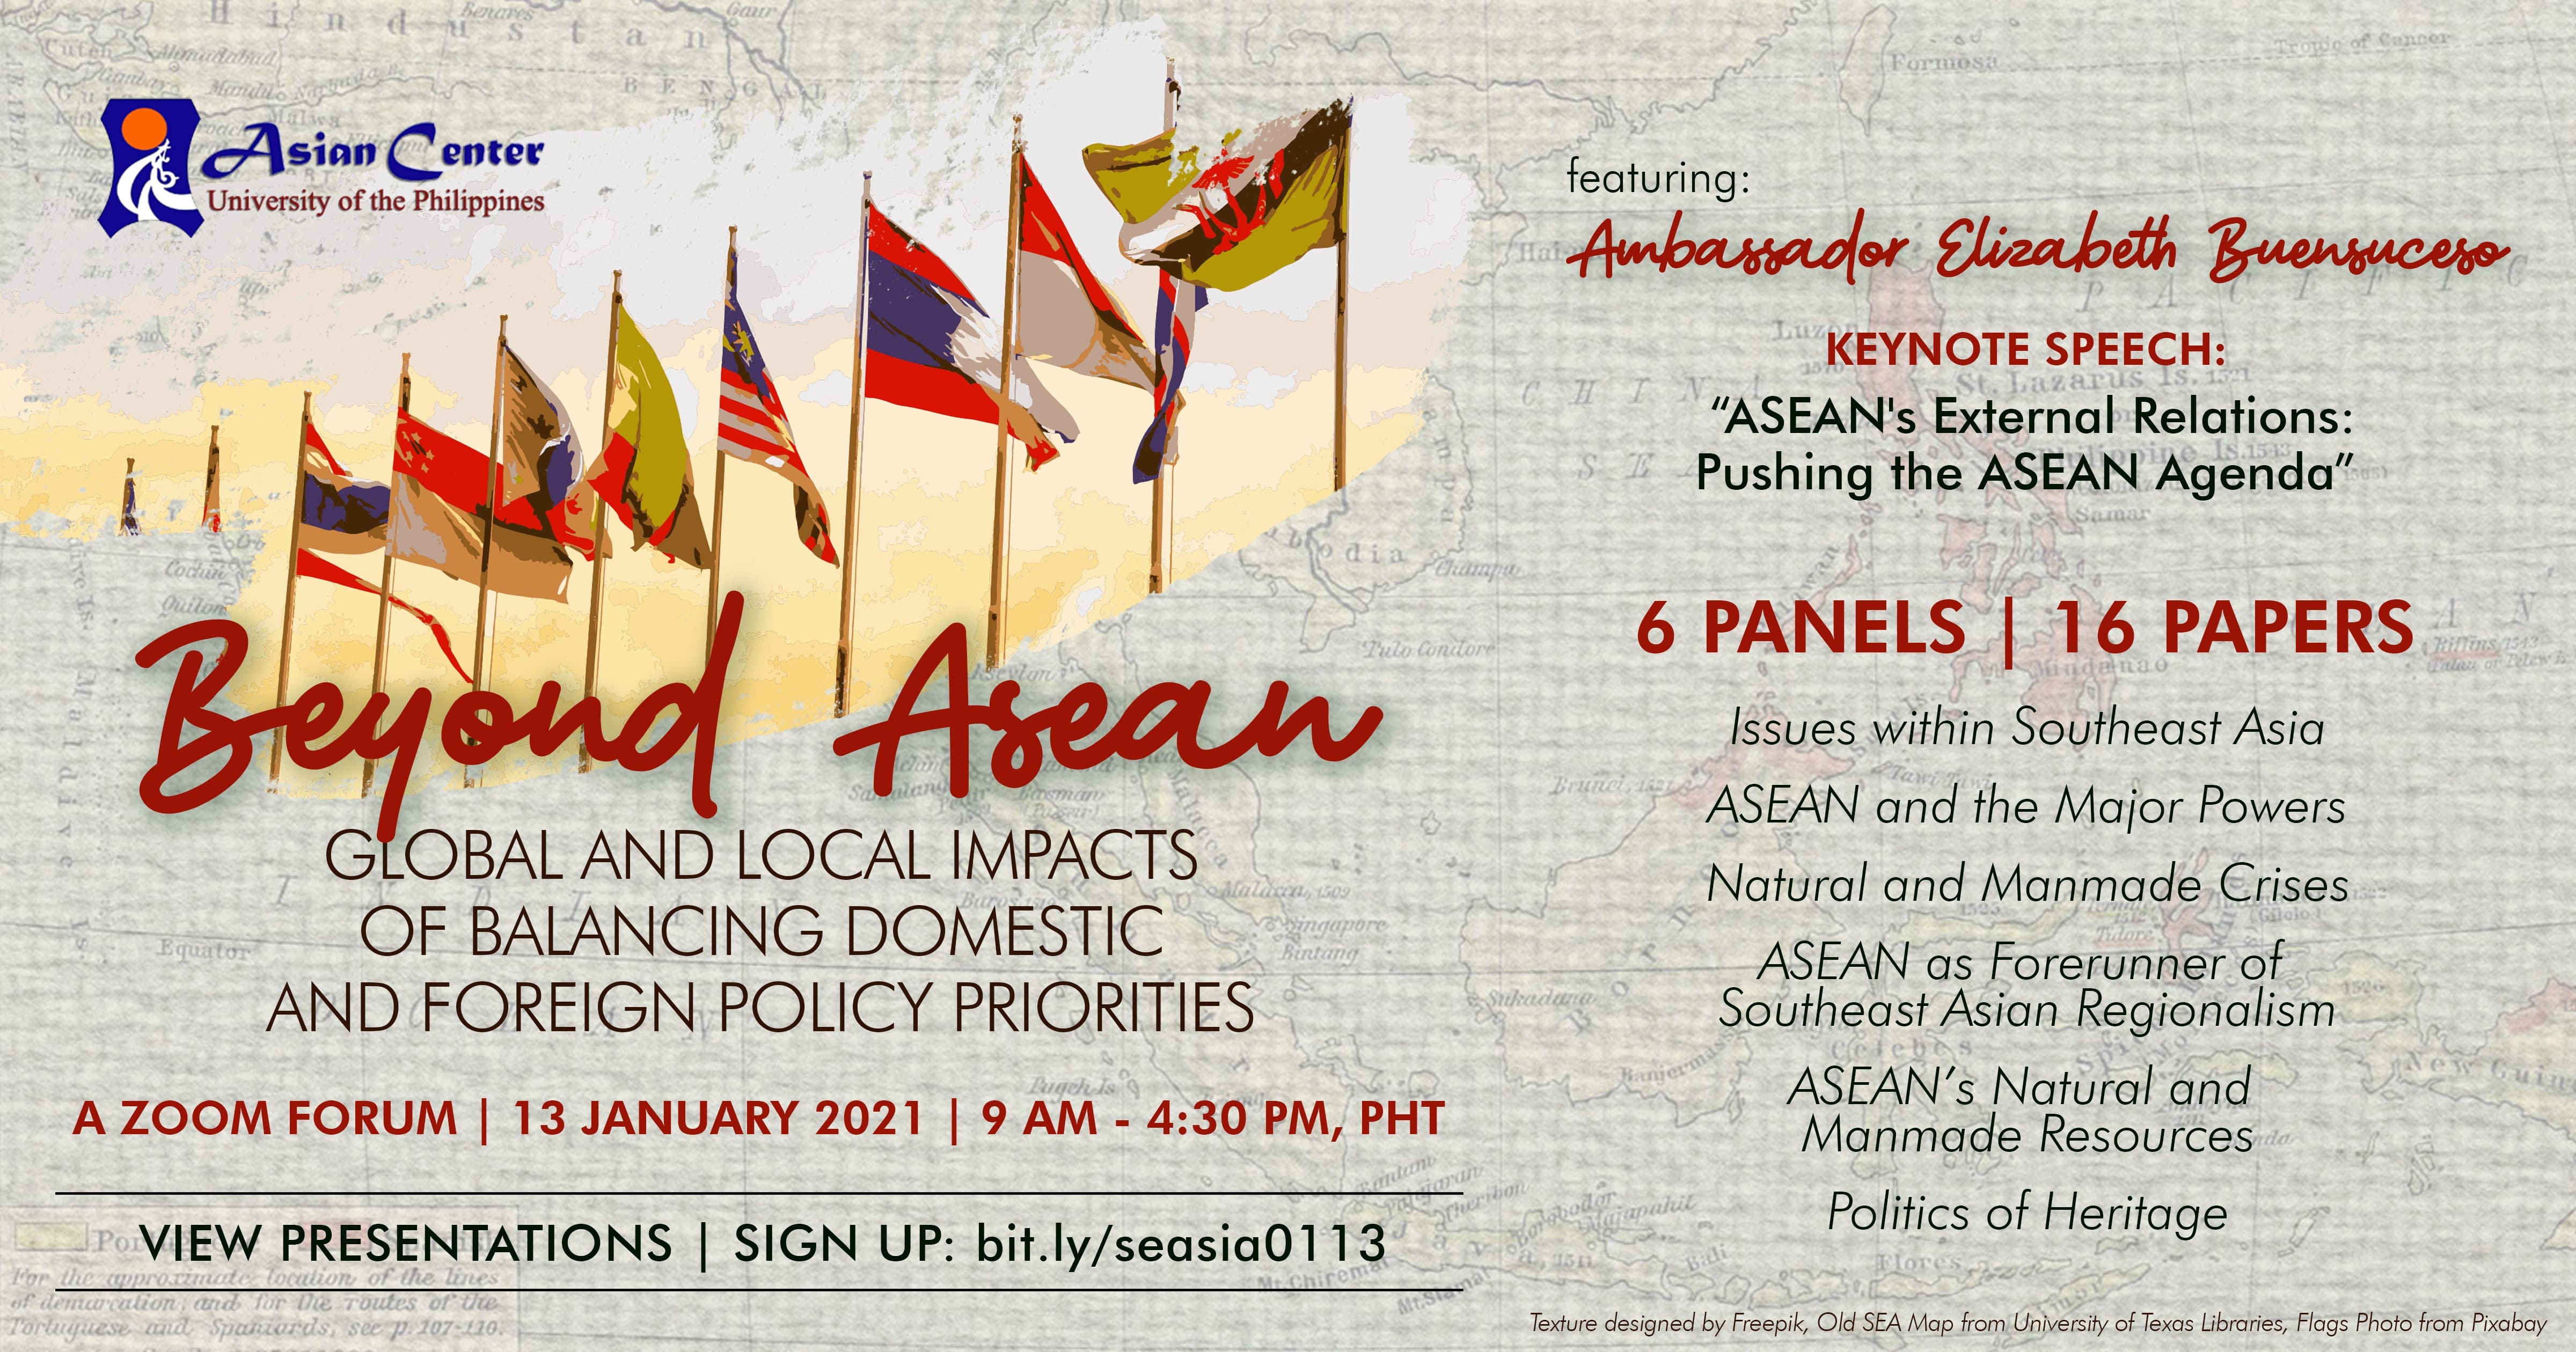 Beyond ASEAN: Global and Local Impacts of Balancing Domestic and Foreign Policy Priorities | A Zoom Forum (13 Jan 2021)